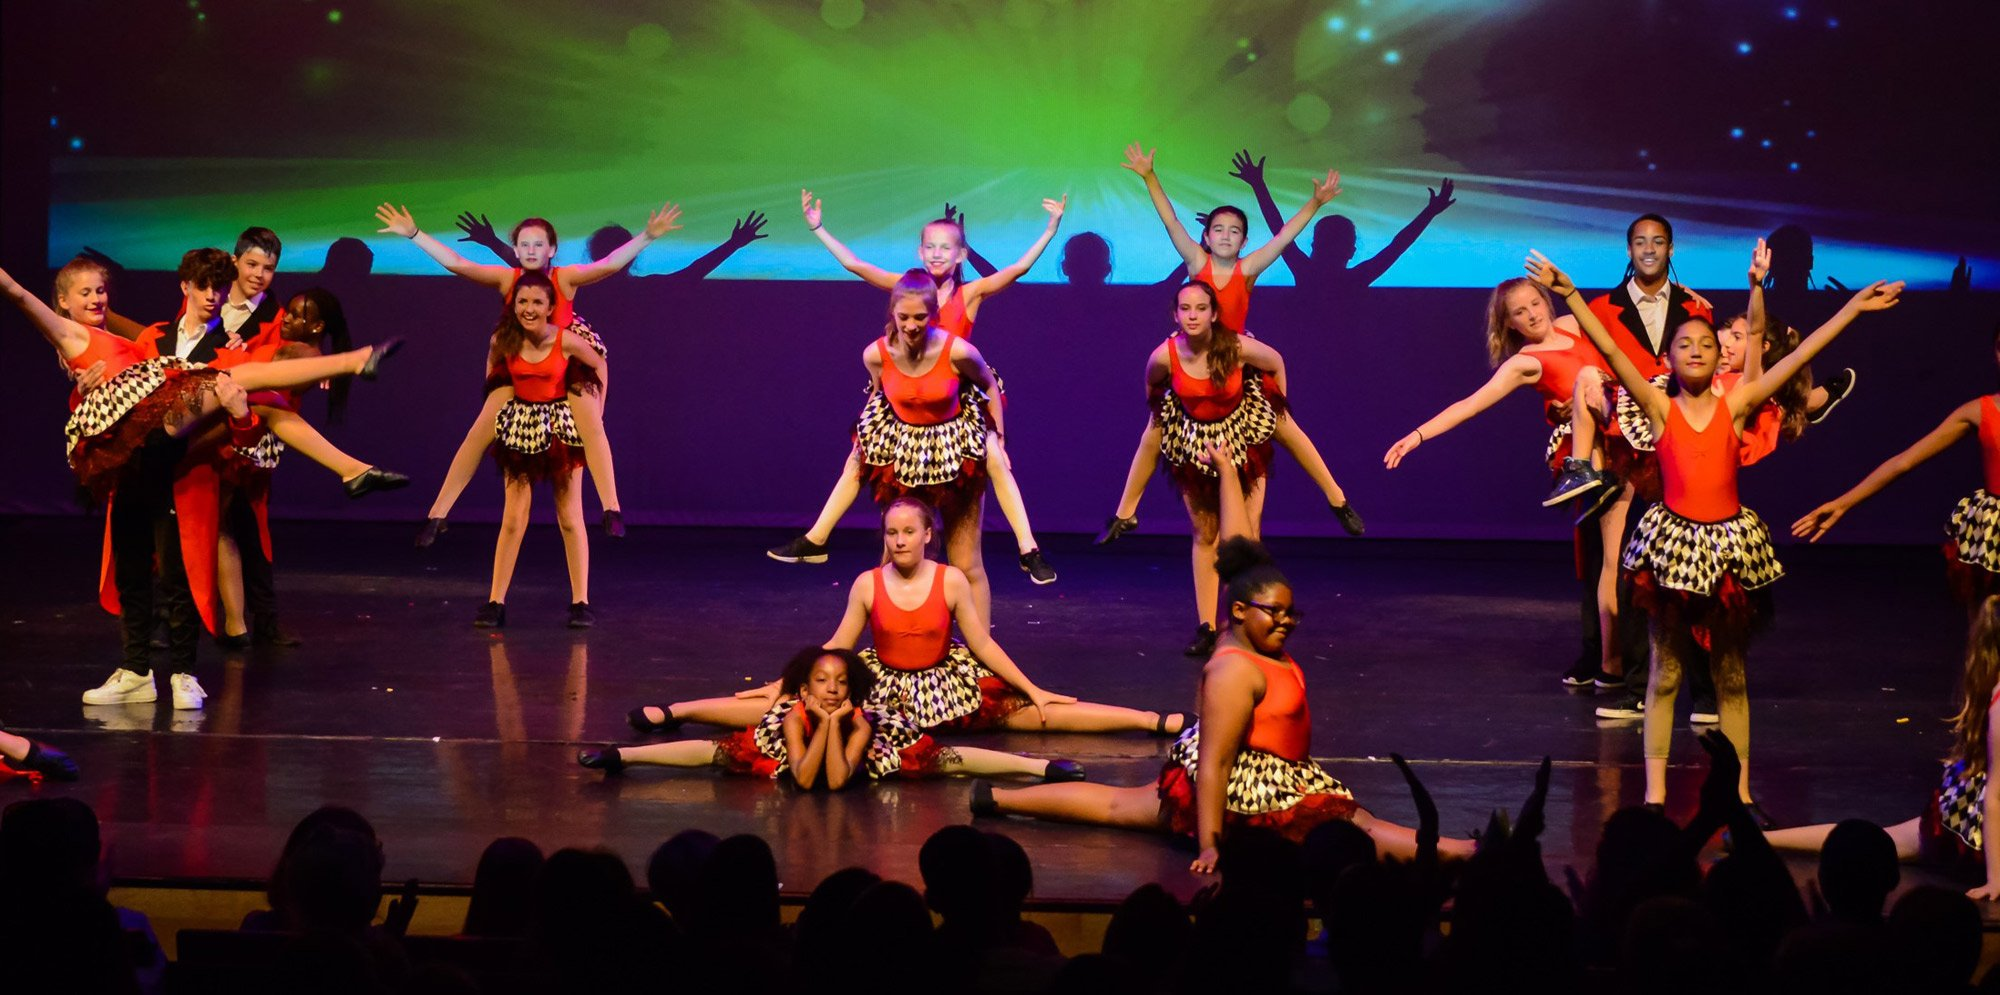 Girls dancing on stage, some of them piggy-back-riding others, others doing the splits